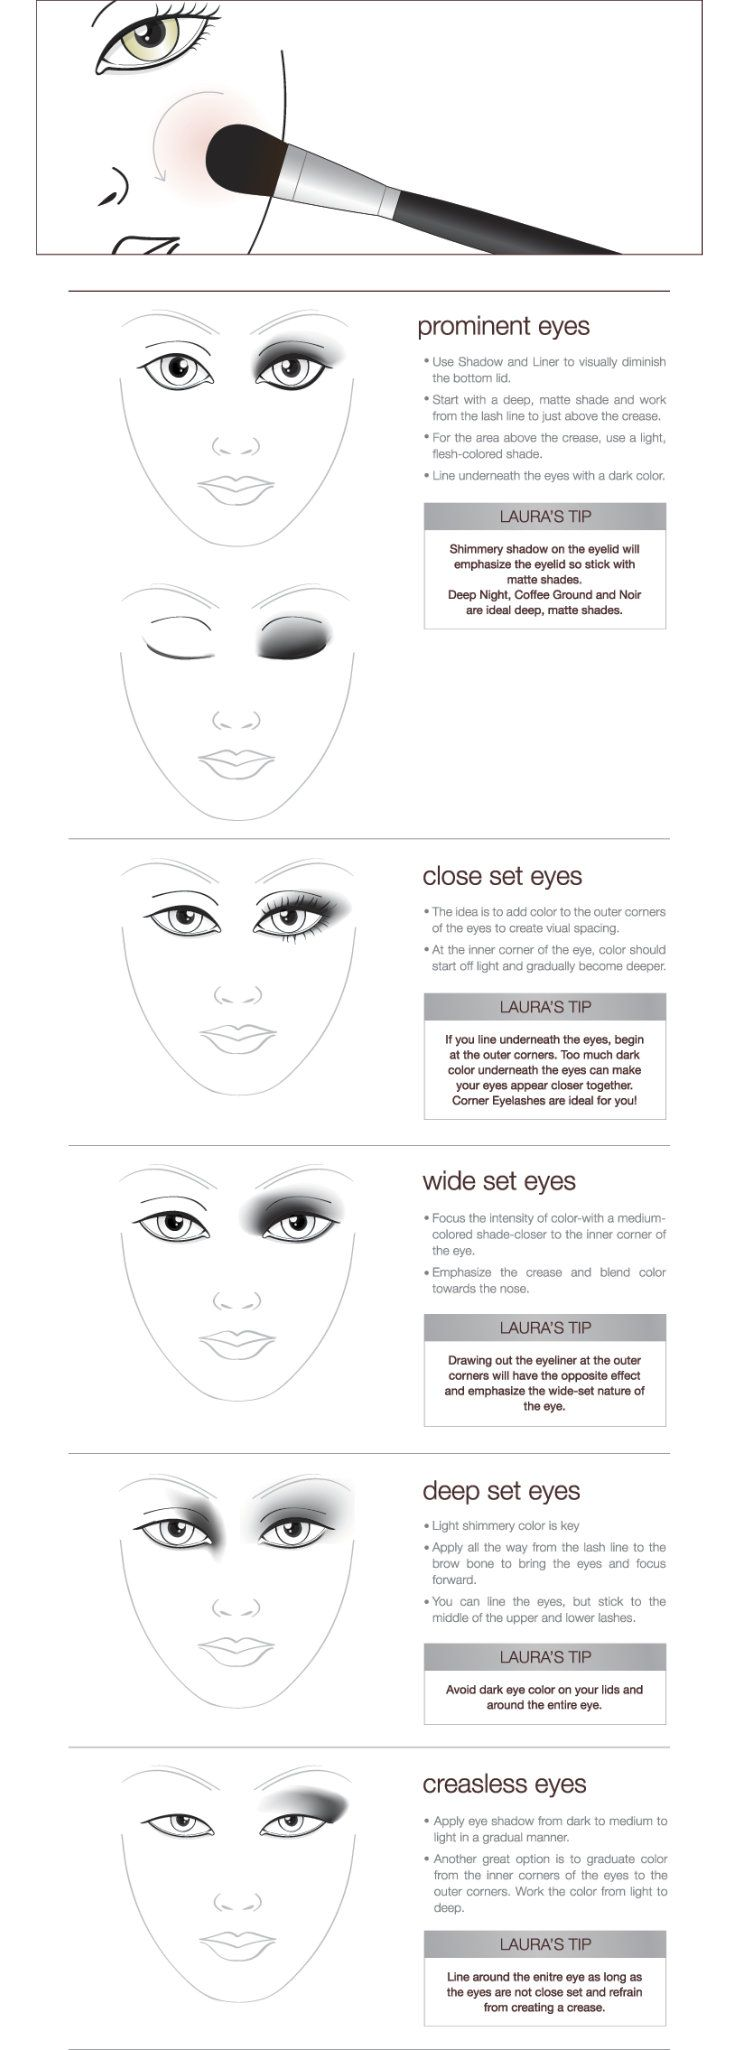 The eyes have it. Makeup Tips for prominent, wide-set